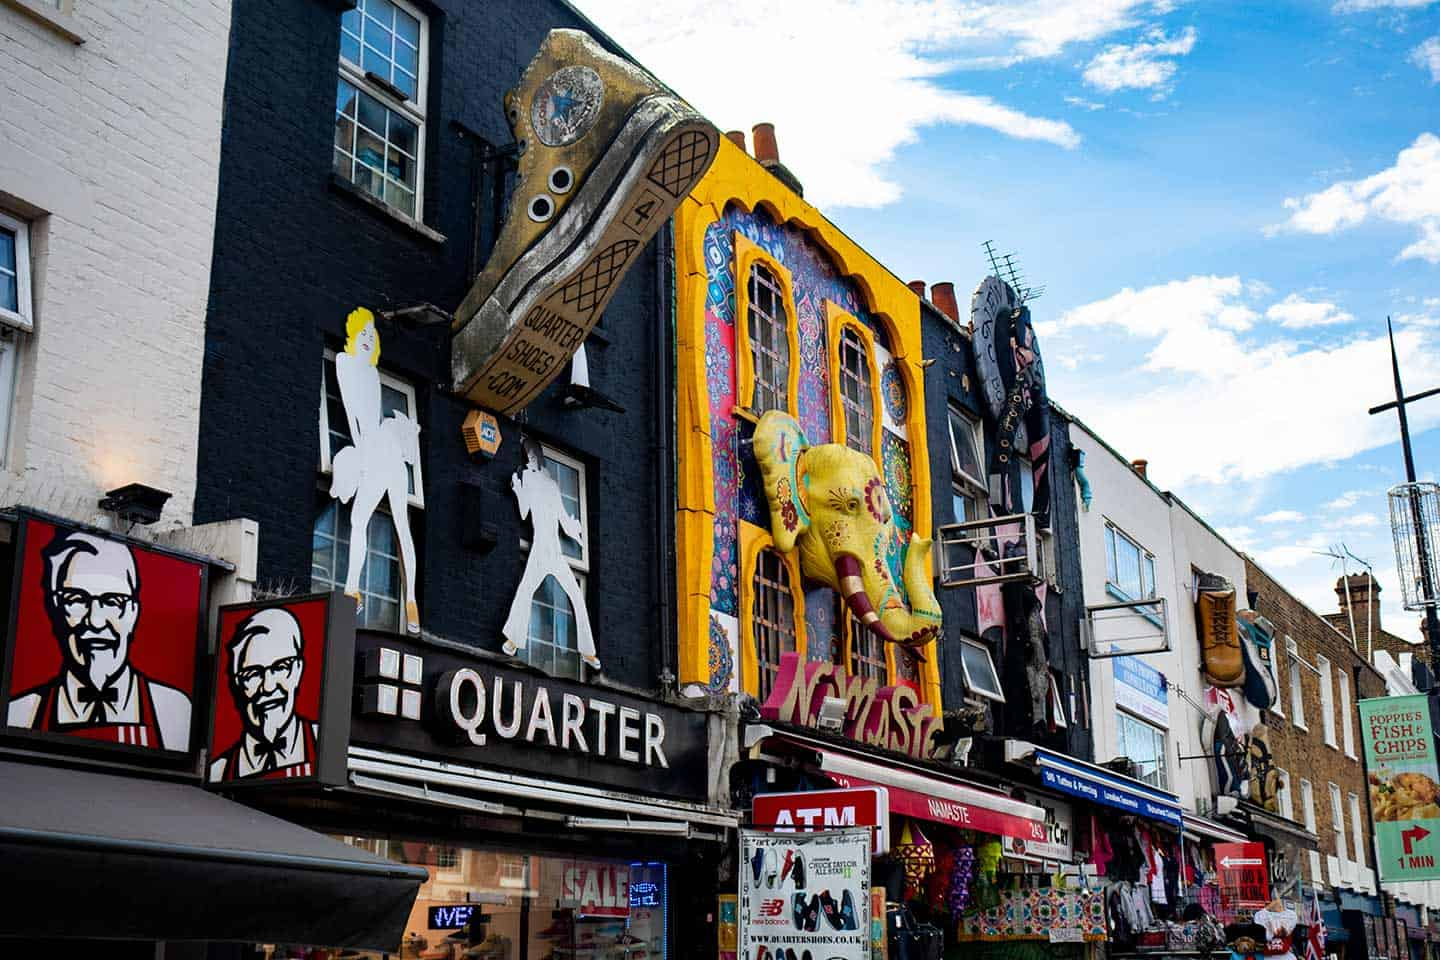 Image of the famous shop fronts on Camden High Street with sculptures of boots and elephants adorning the upper part of the buildings